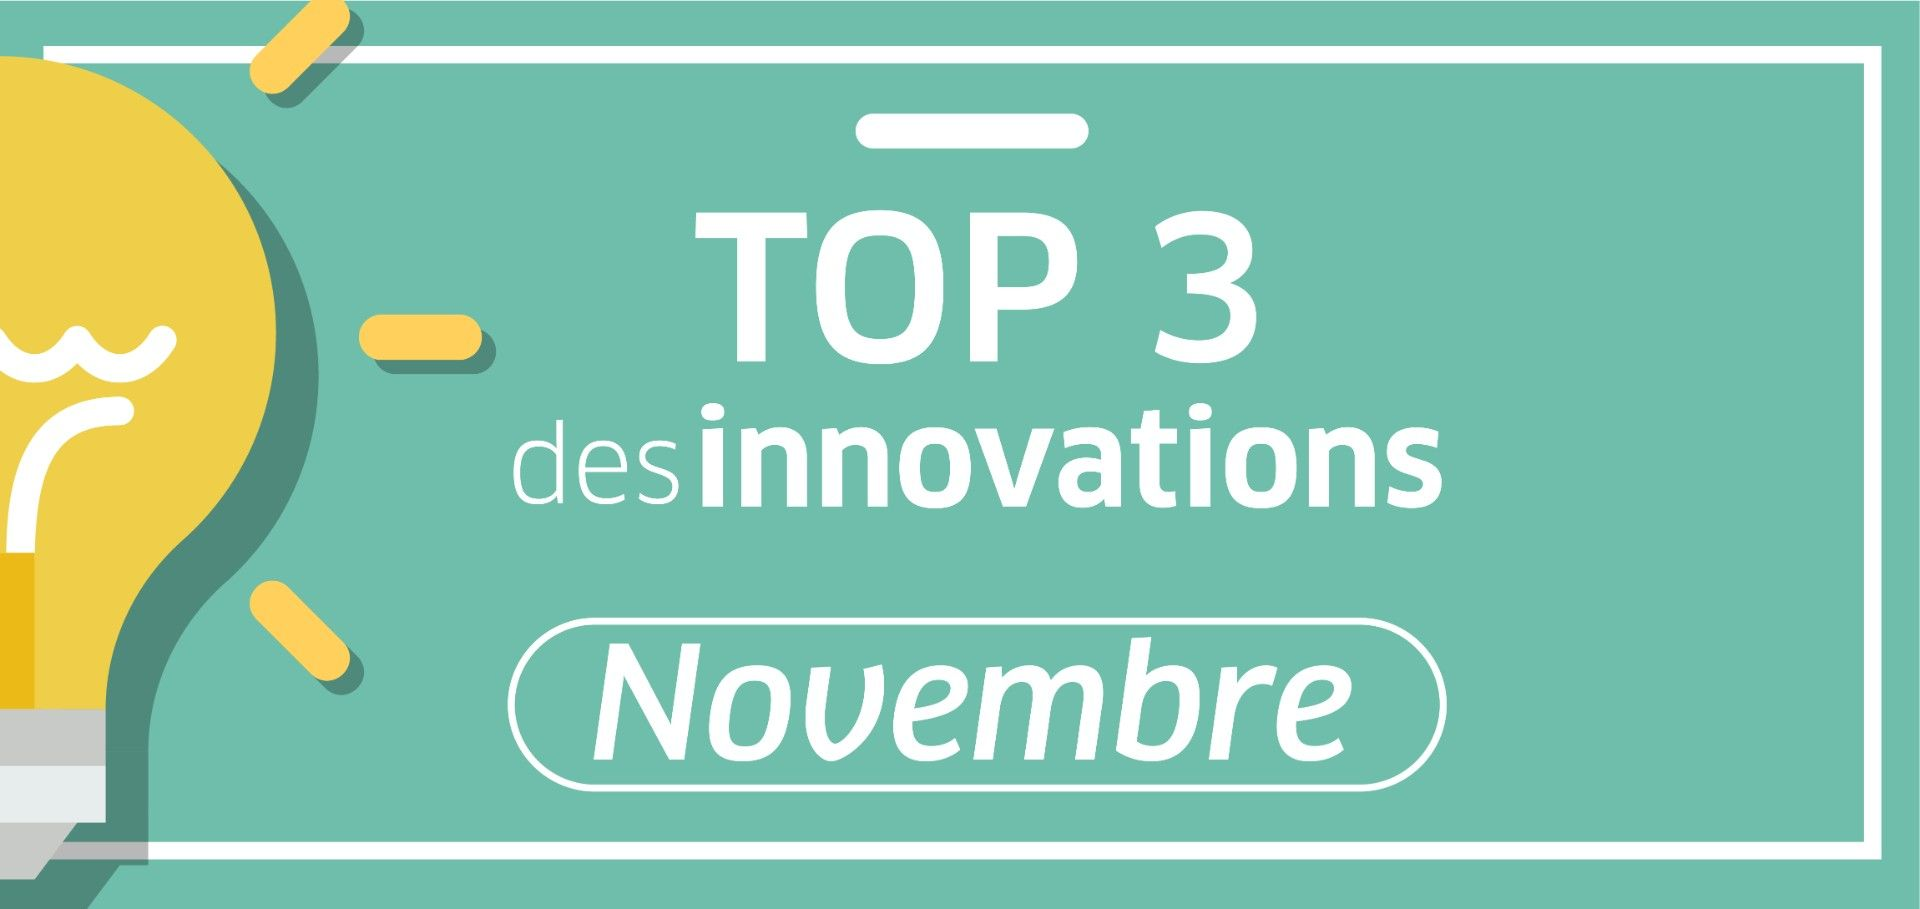 top 3 innovations Novembre